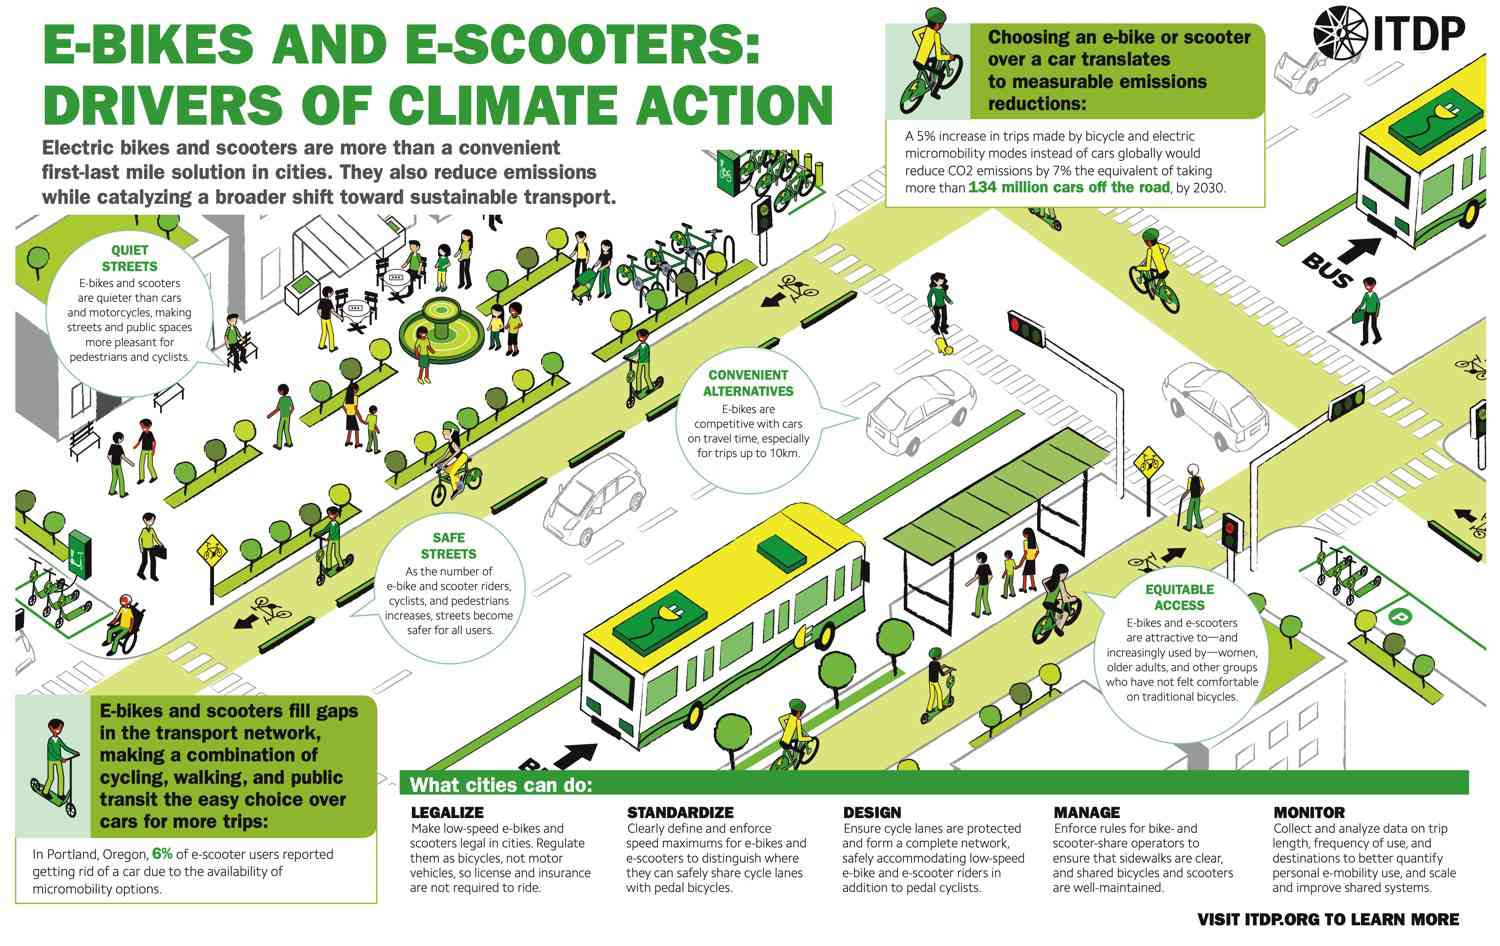 Poster showing climate impact of e-bikes and e-scooters